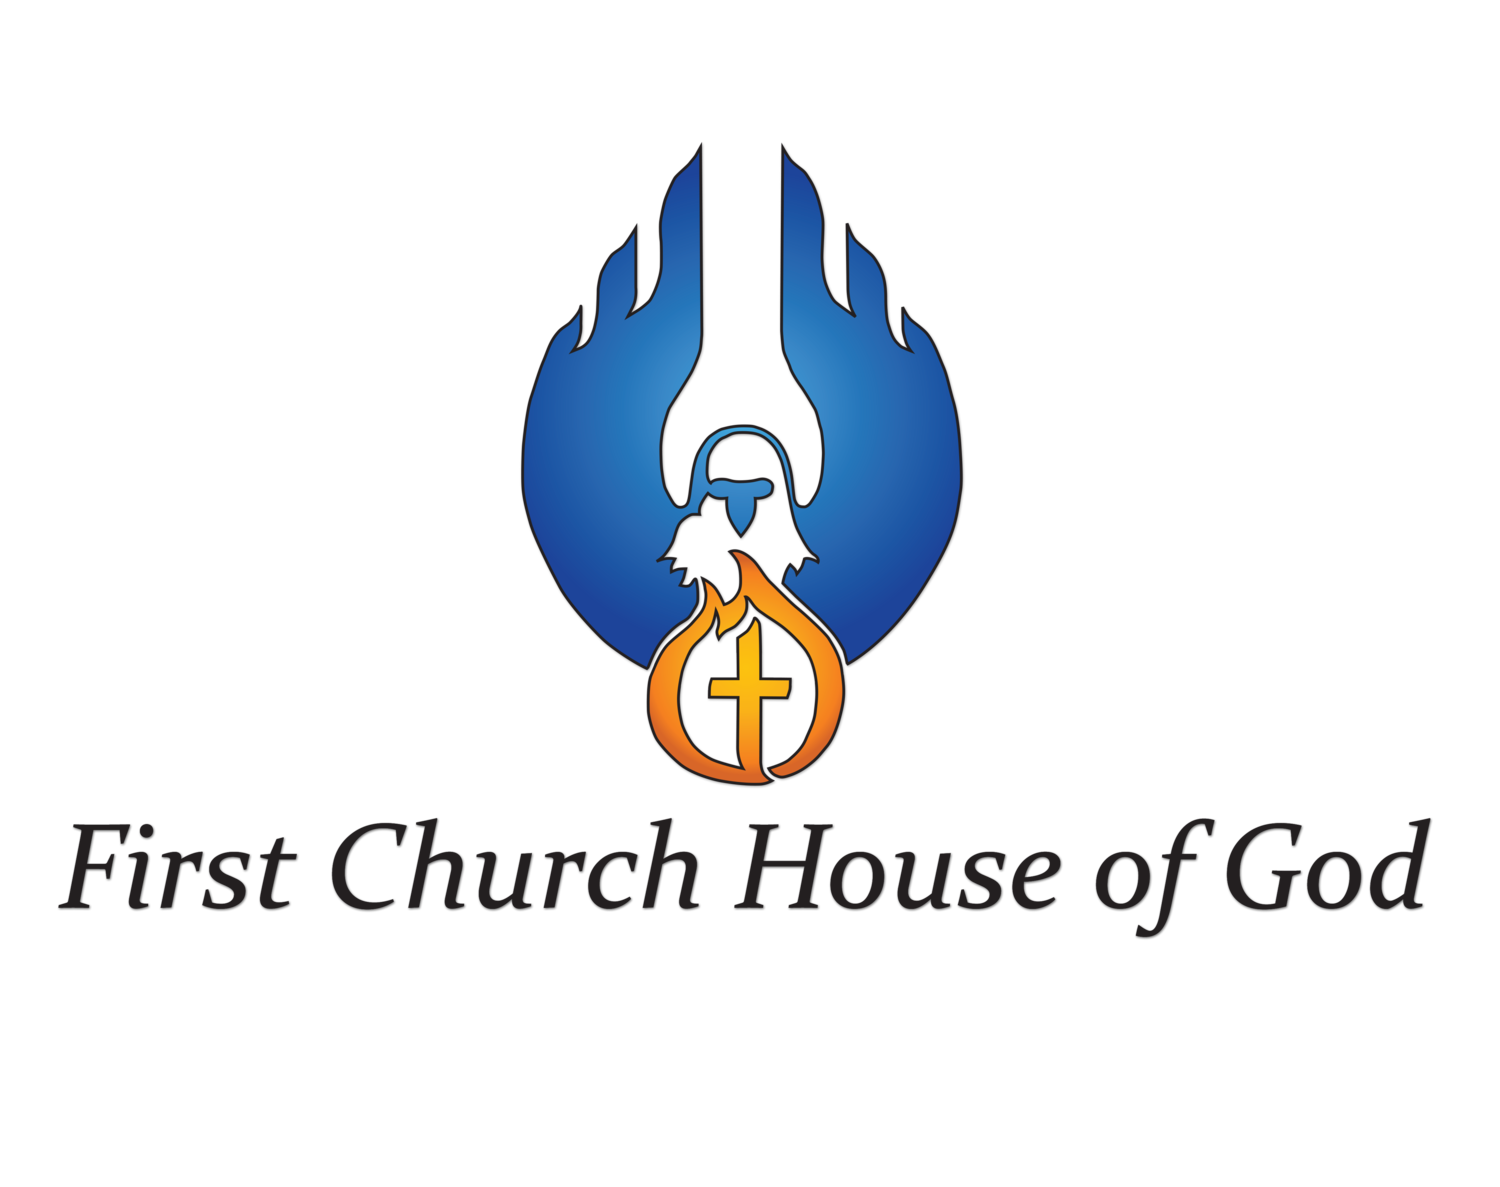 First Church House of God